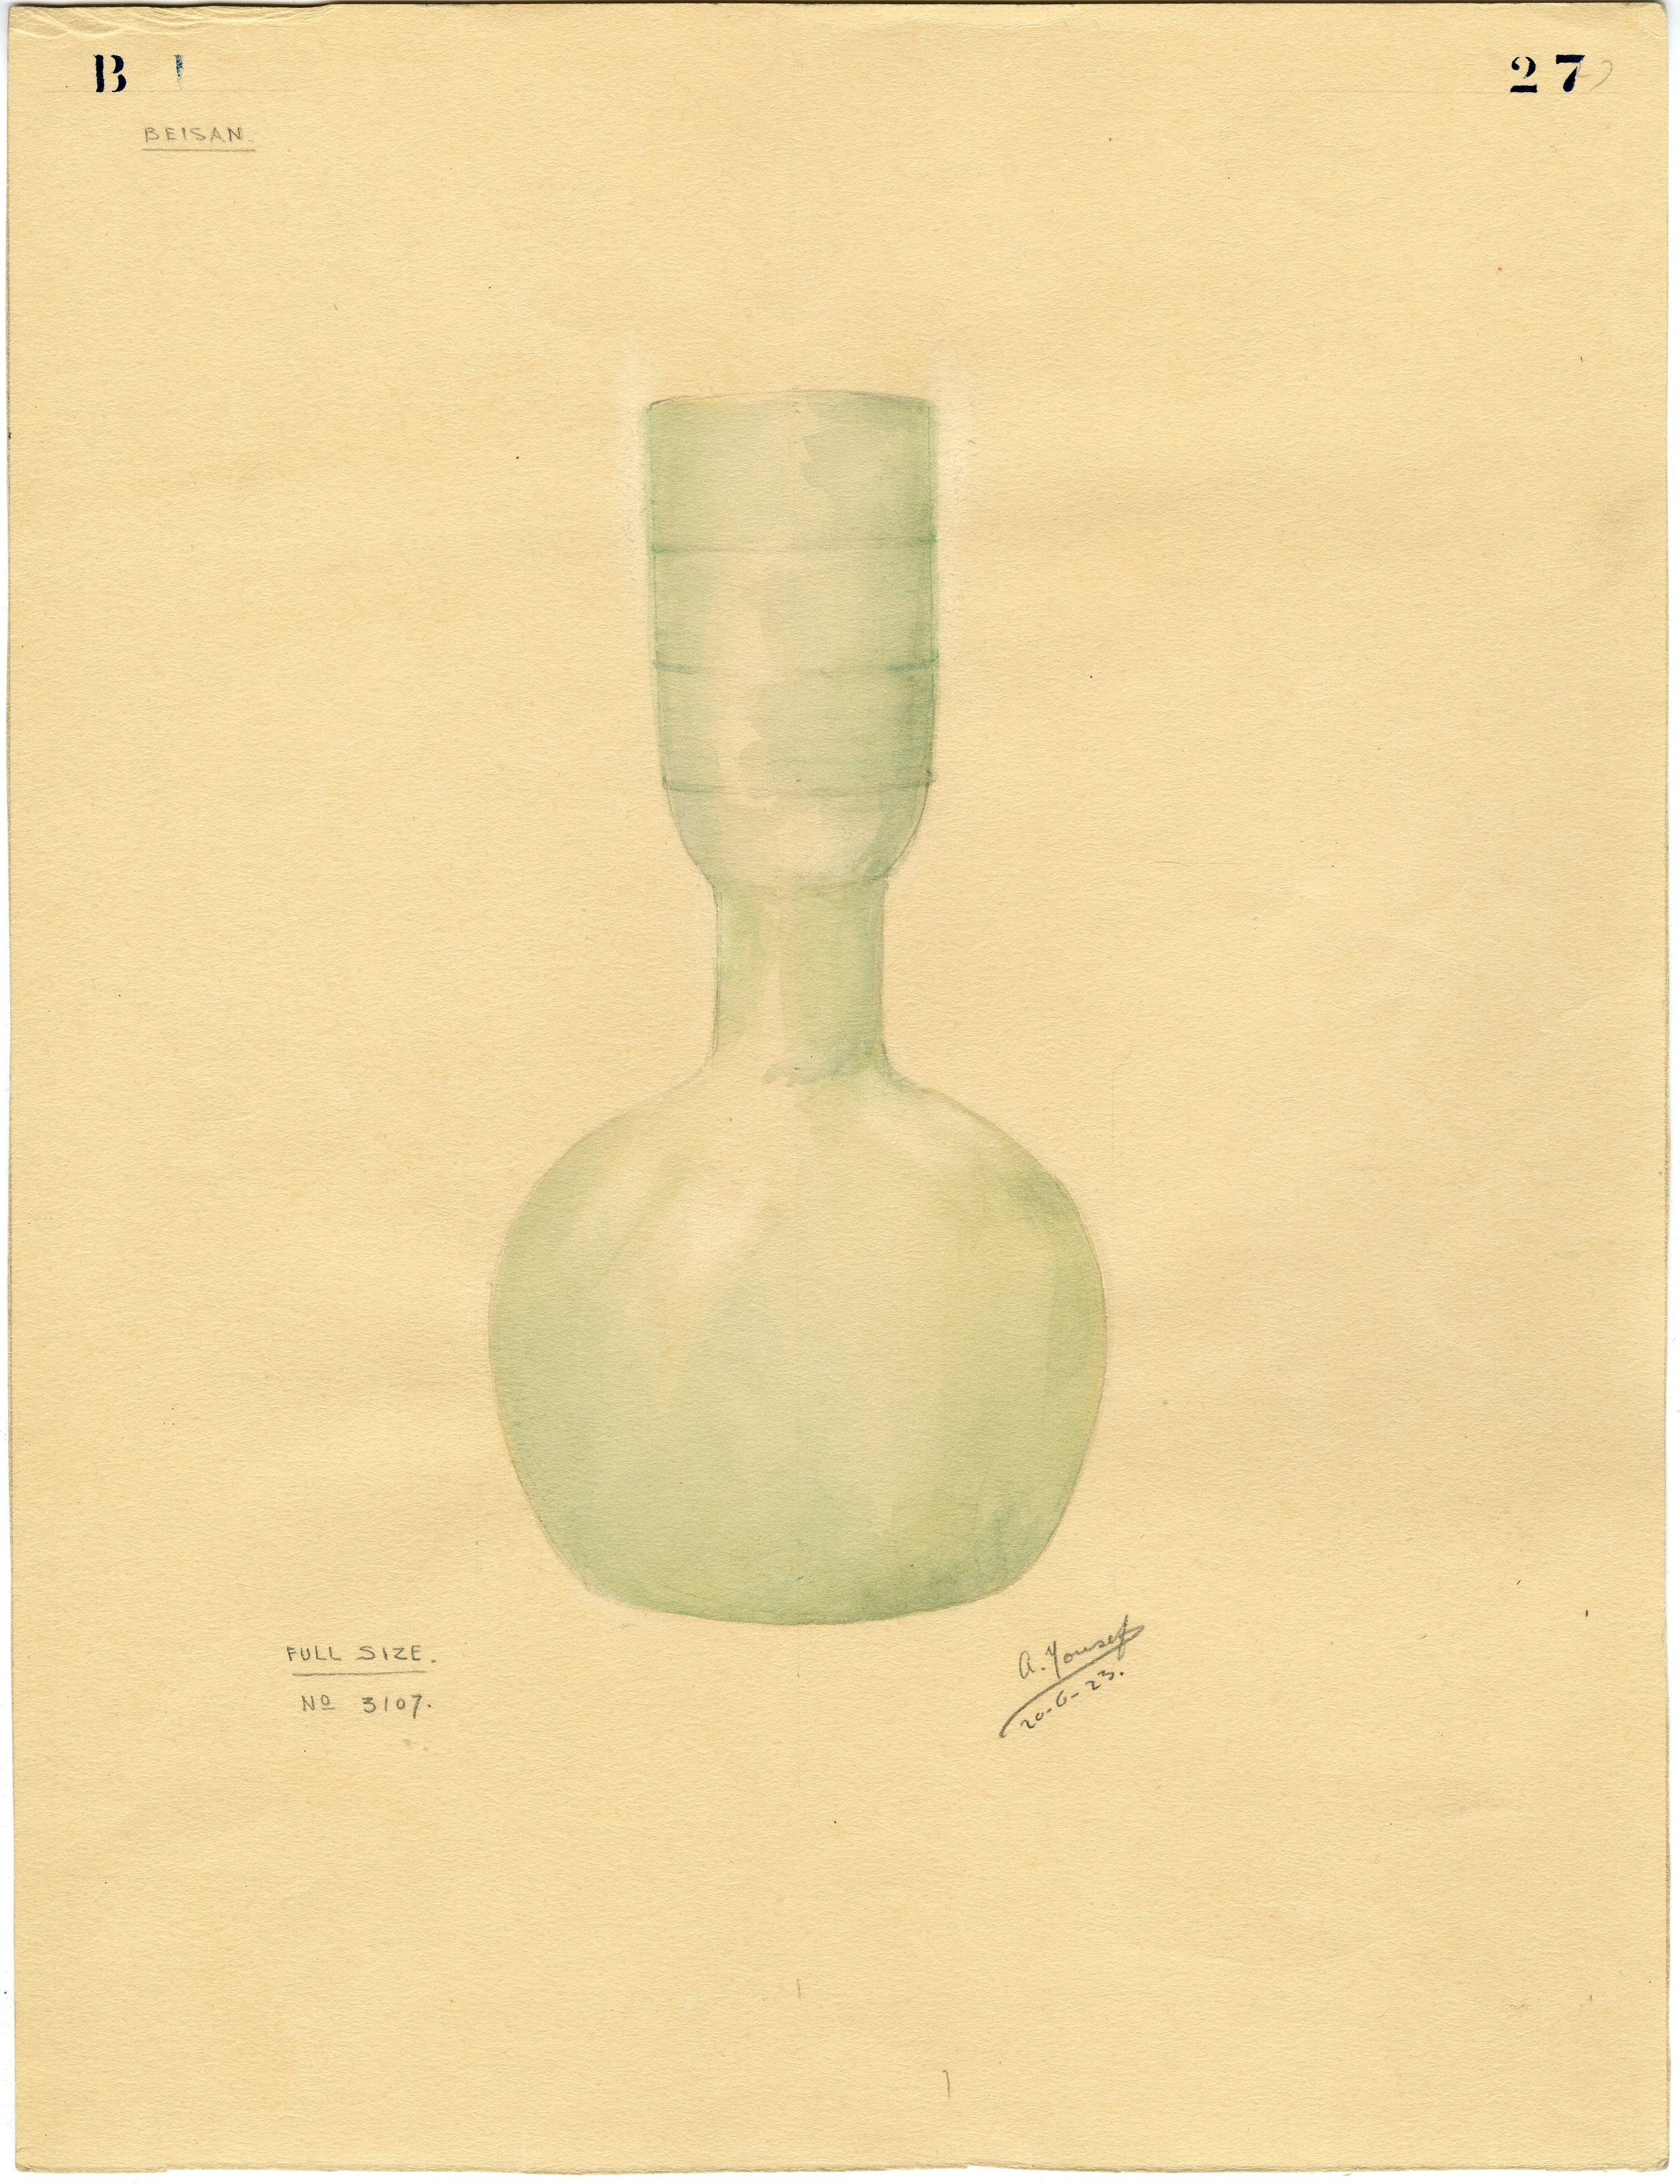 Watercolor of glass pot # 3107, from the Fisher excavations.